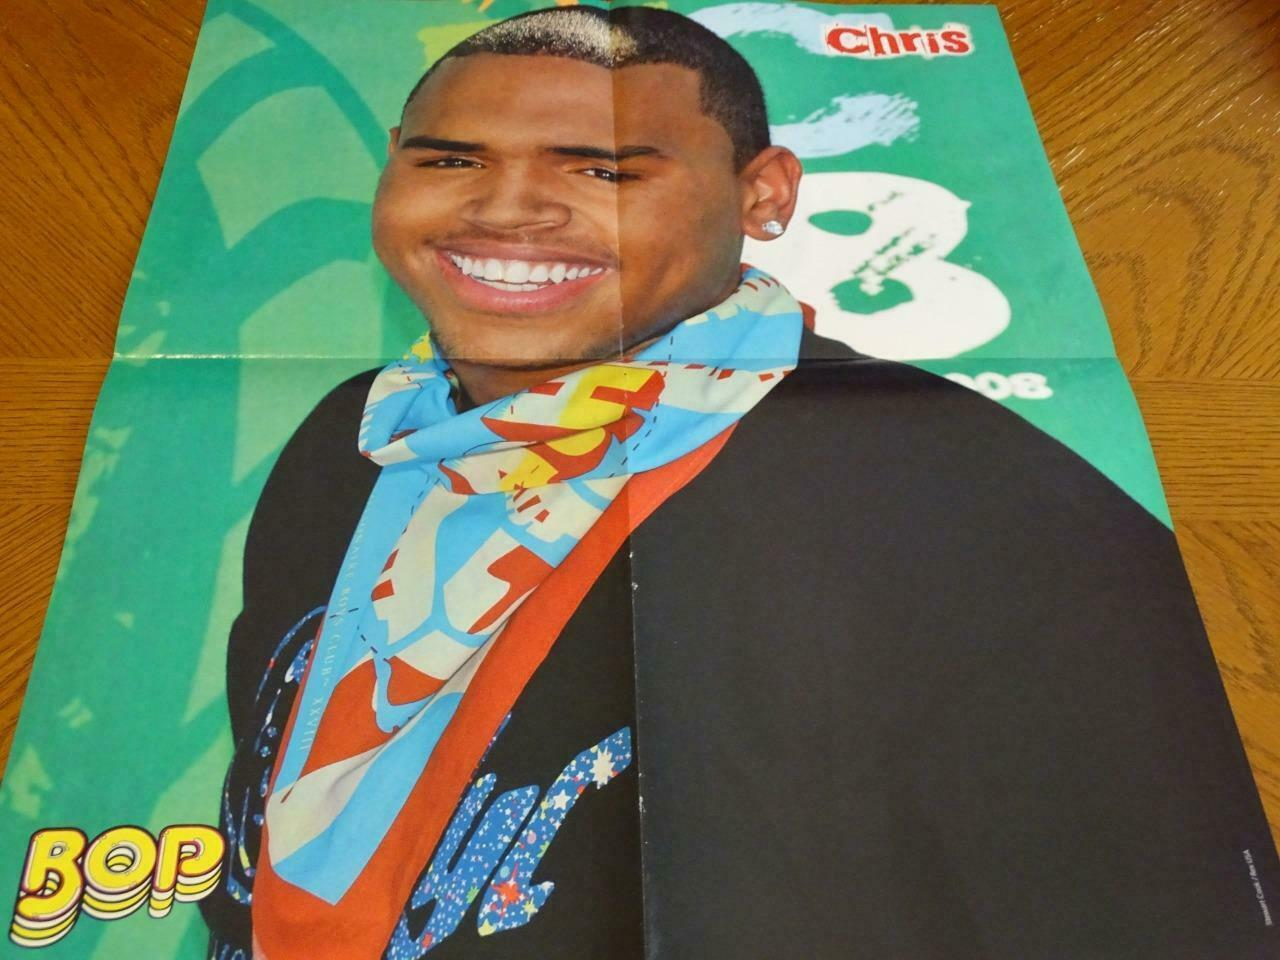 Primary image for Selena Gomez Chris Brown teen magazine poster clipping magic carpet Bop